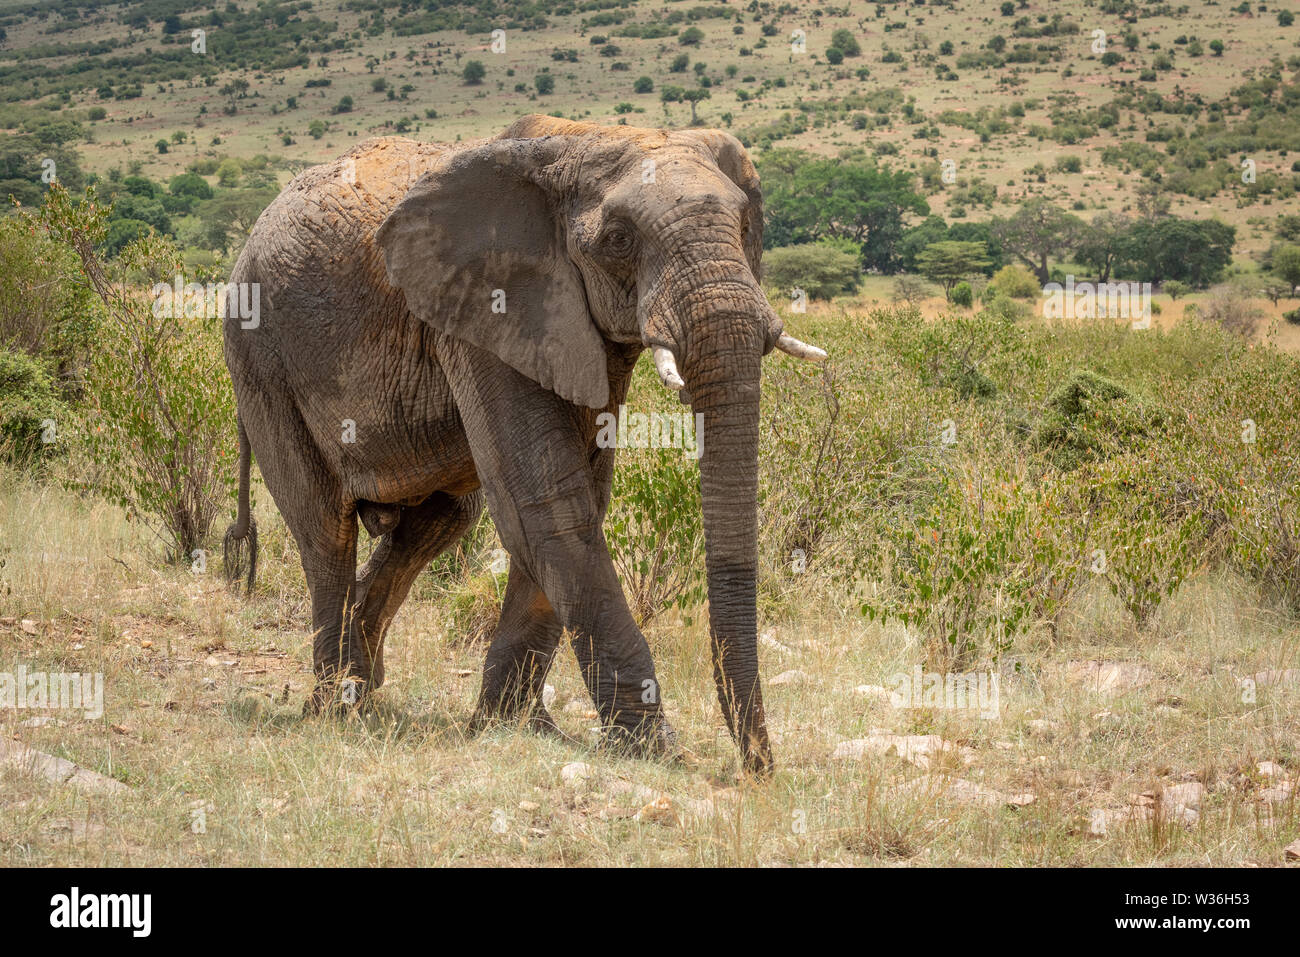 African elephant with dusty back crosses hillside - Stock Image